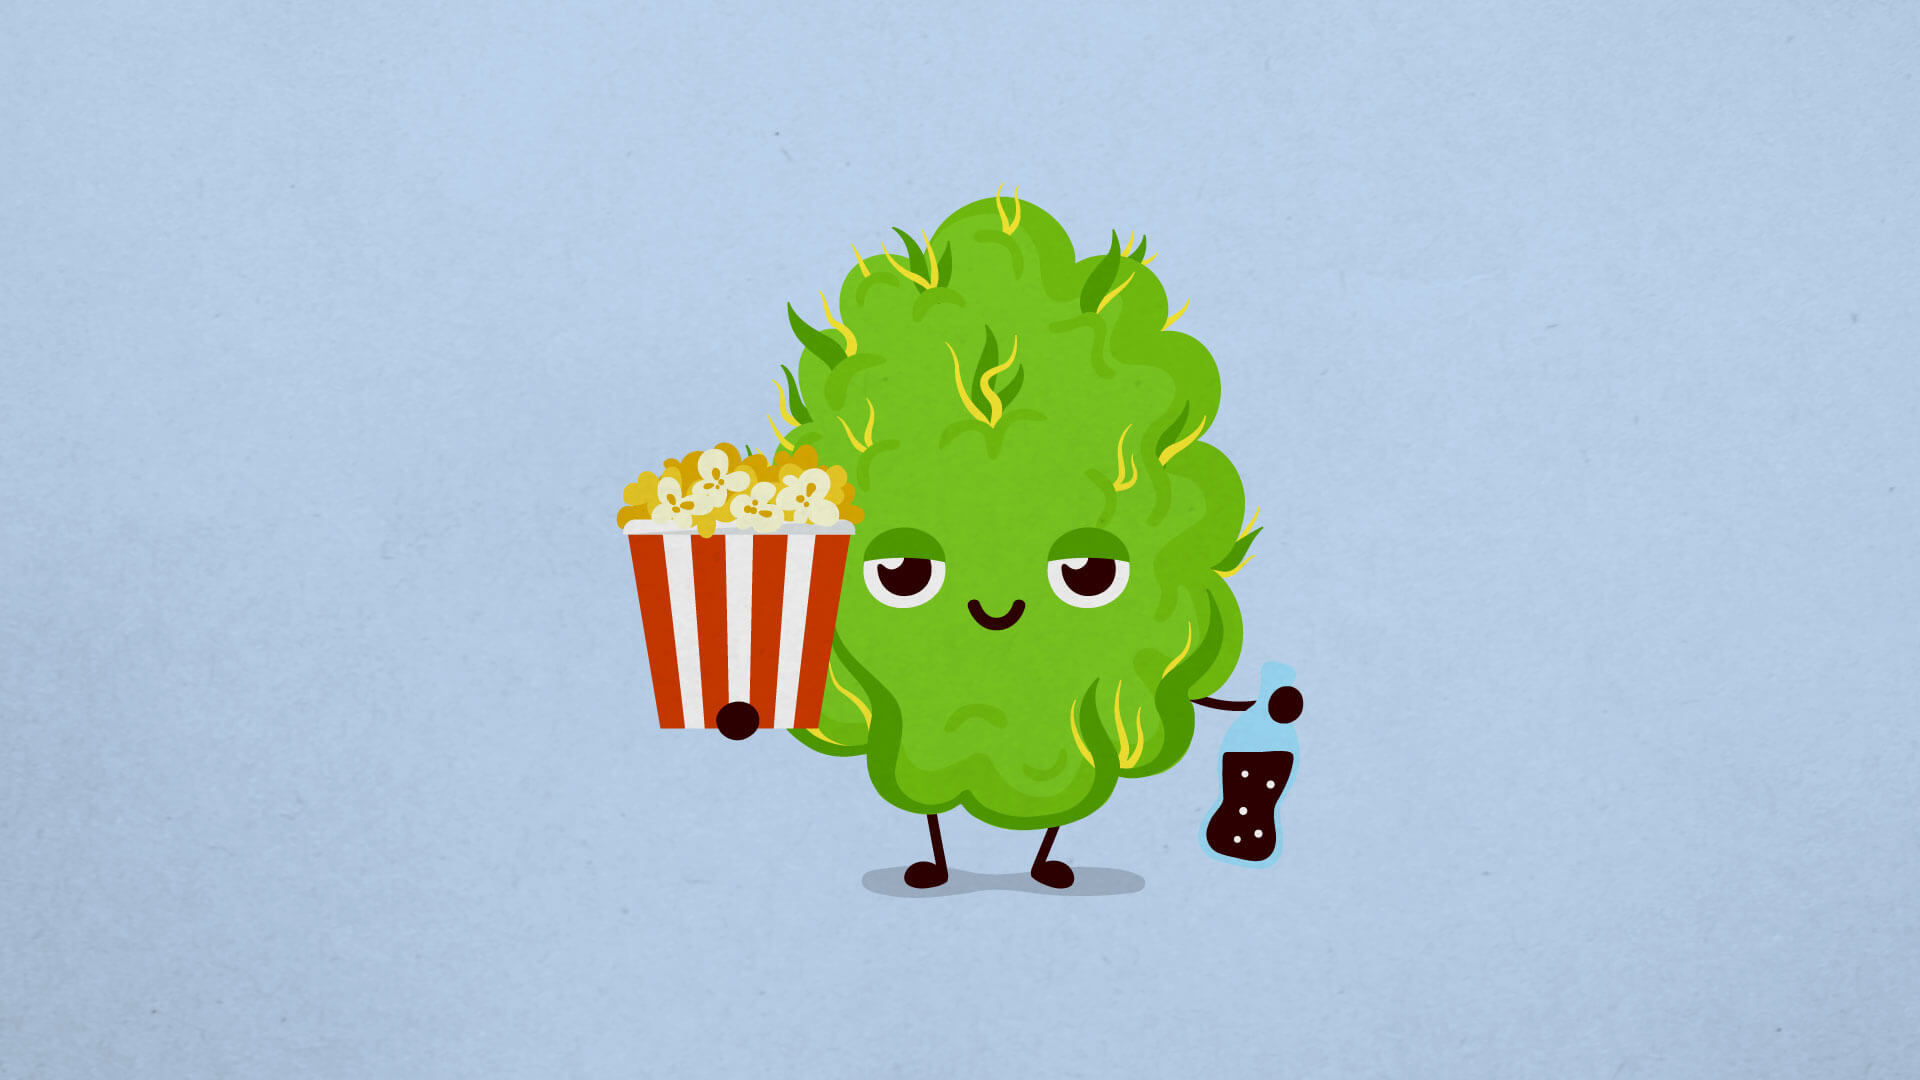 a cannabis nug holding popcorn and a soda